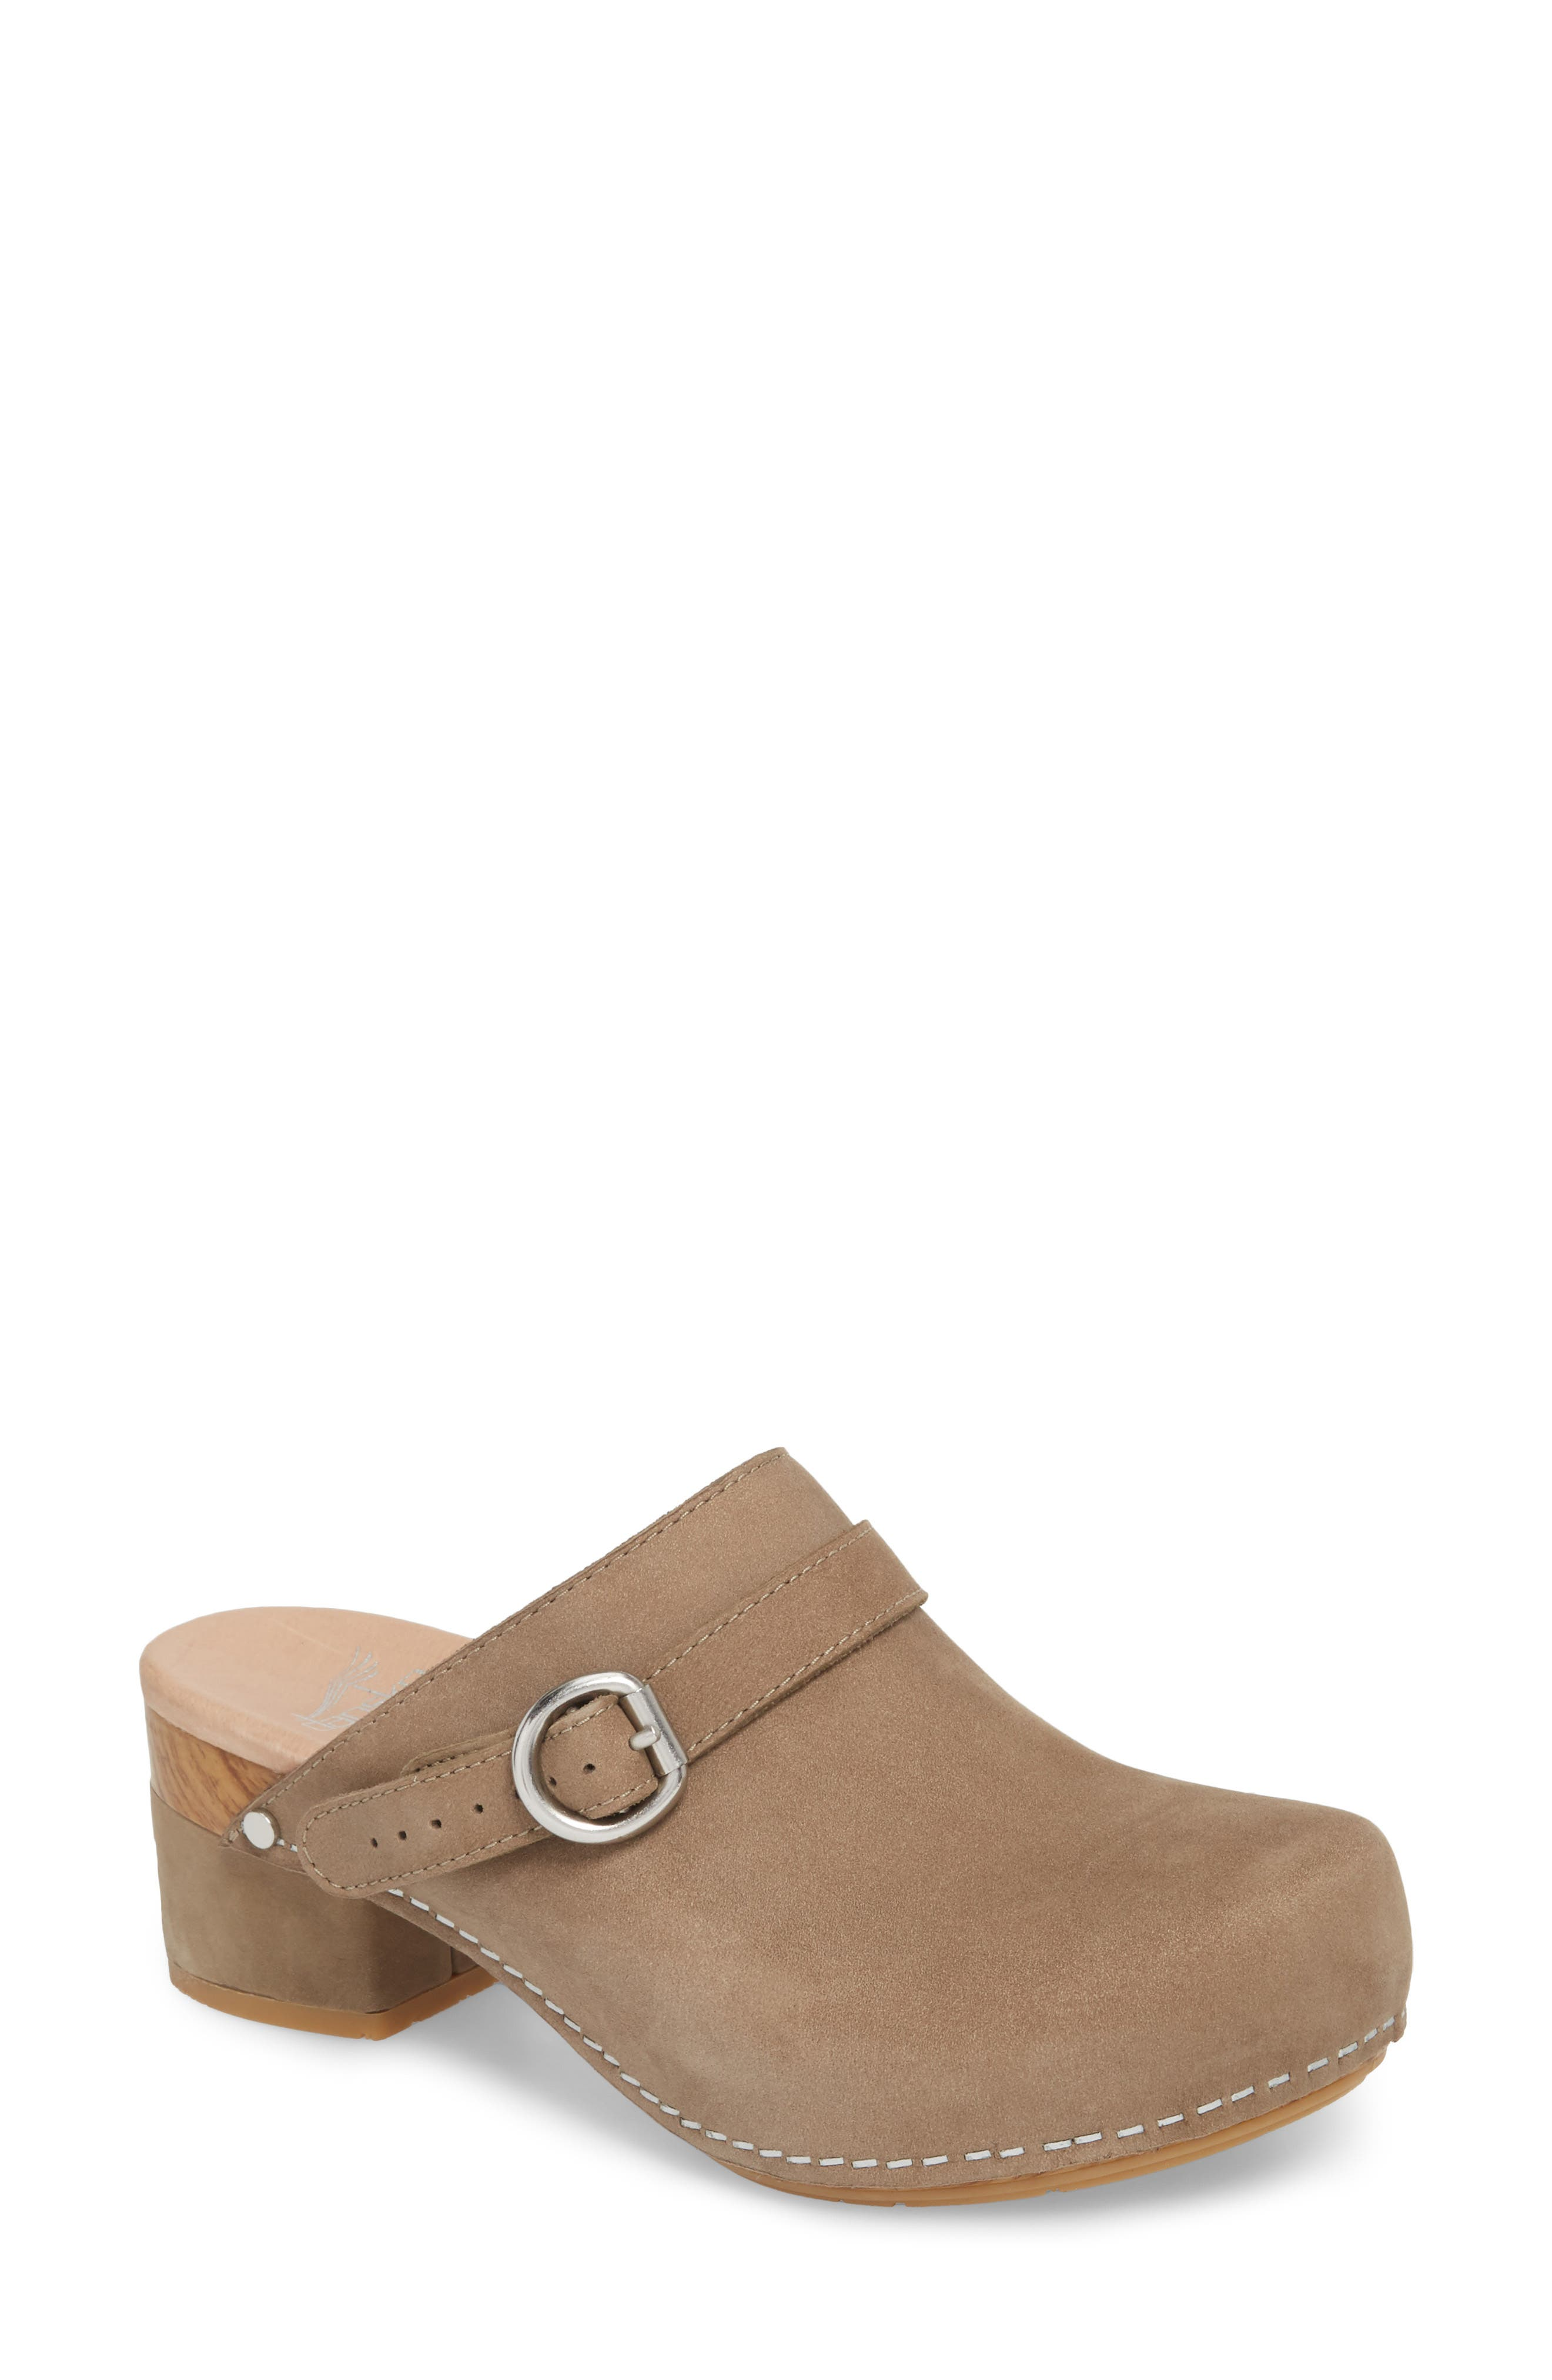 Marty Clog,                         Main,                         color, TAUPE MILLED NUBUCK LEATHER